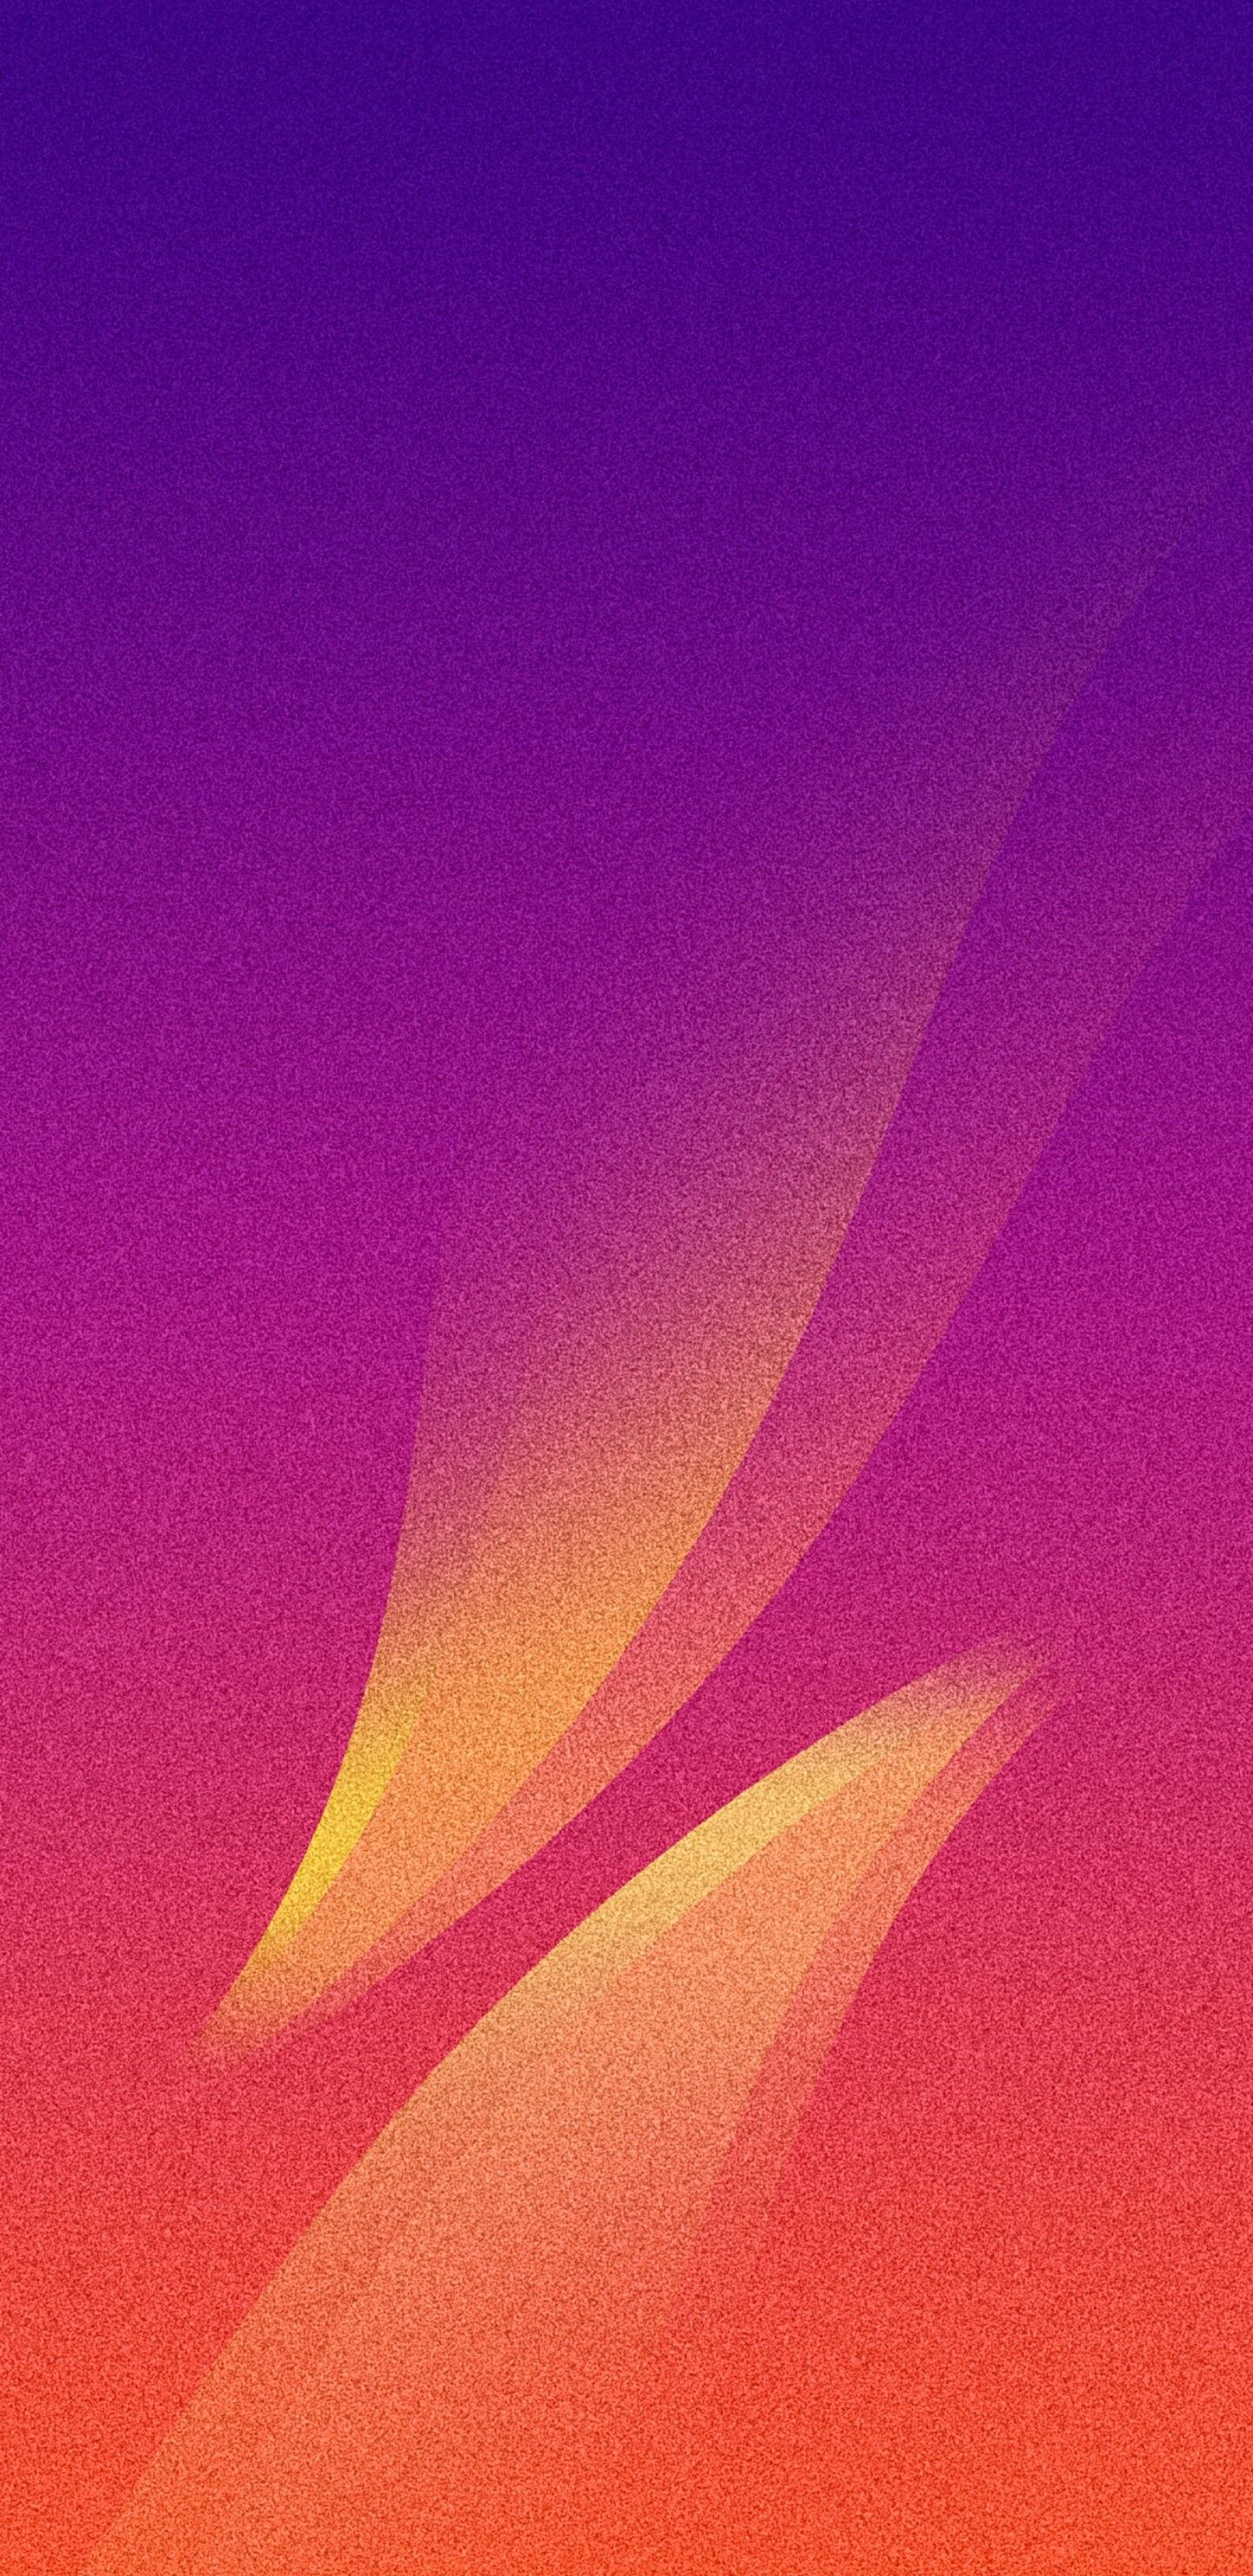 1440x2960 Samsung Galaxy Note 8 Wallpapers HD